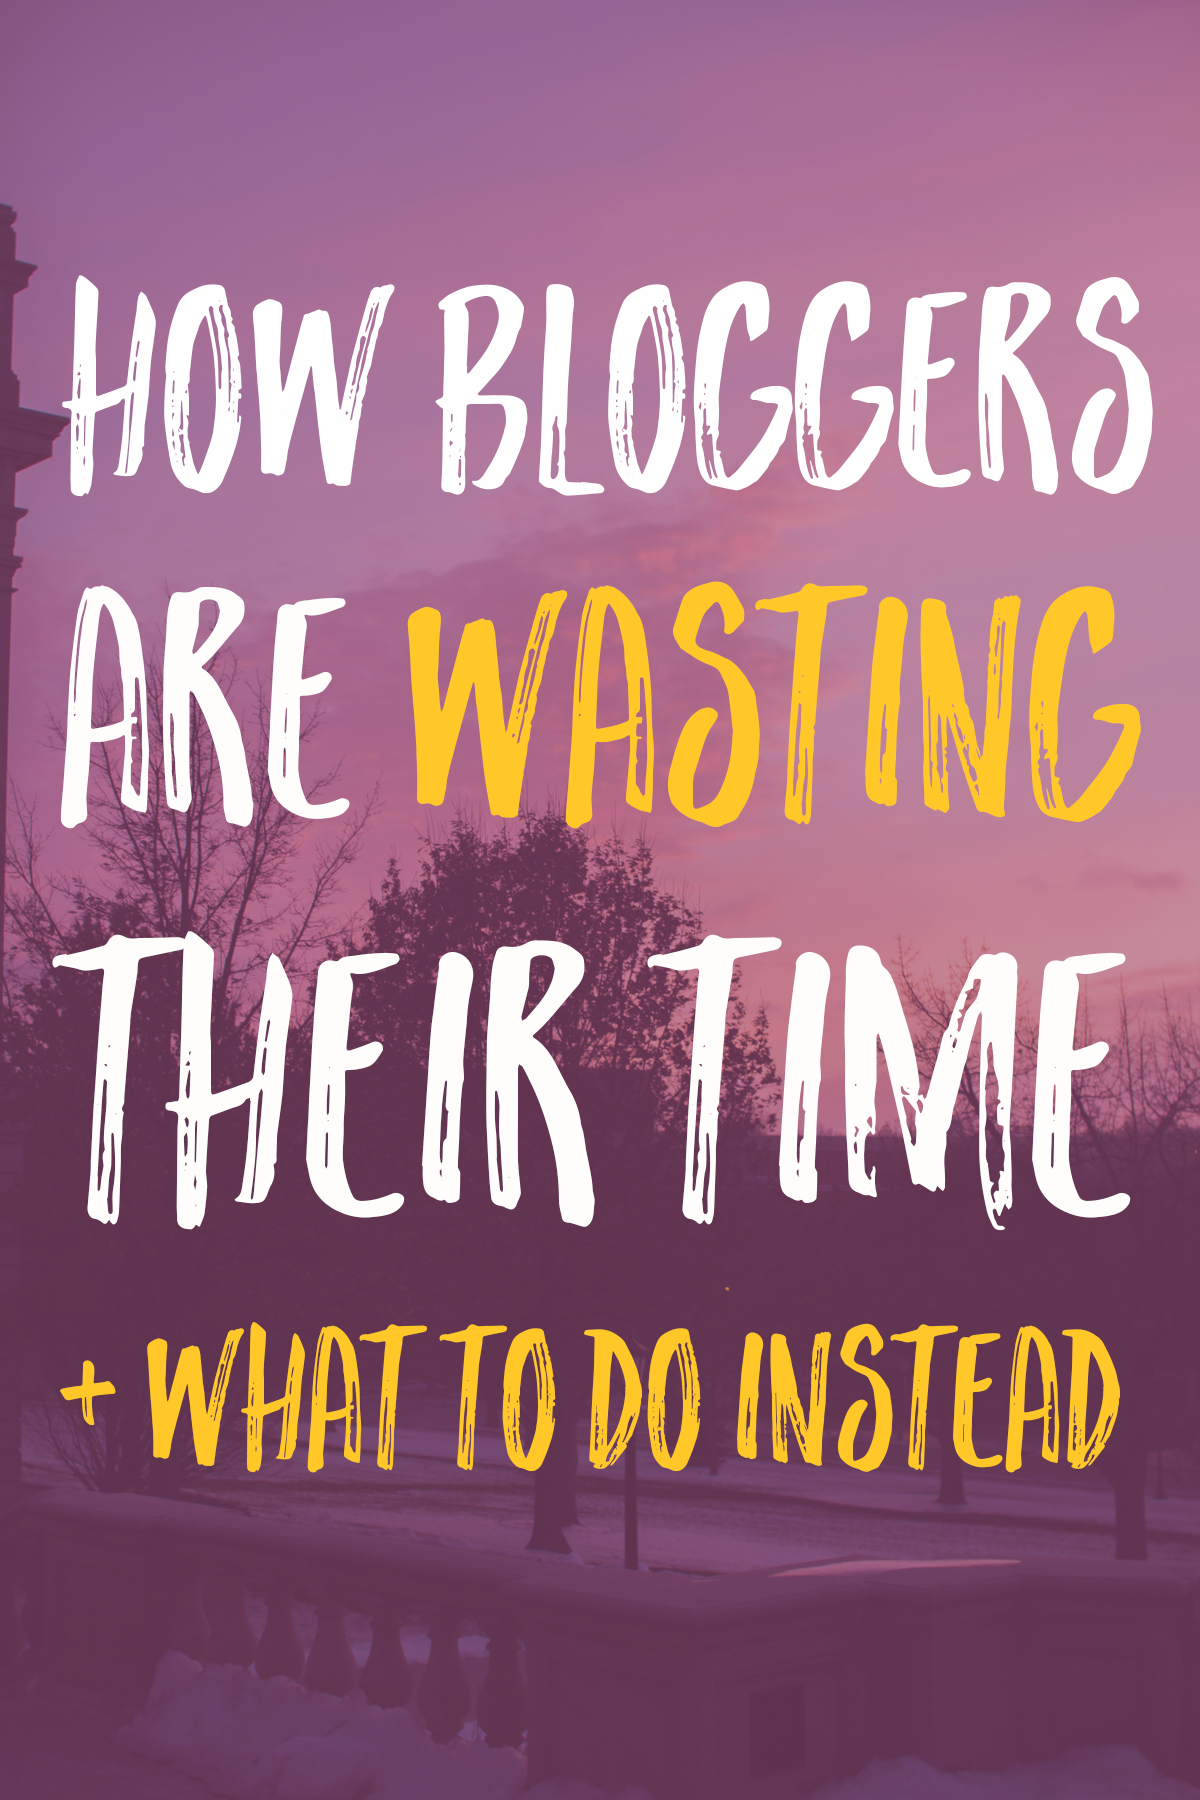 how bloggers waste time